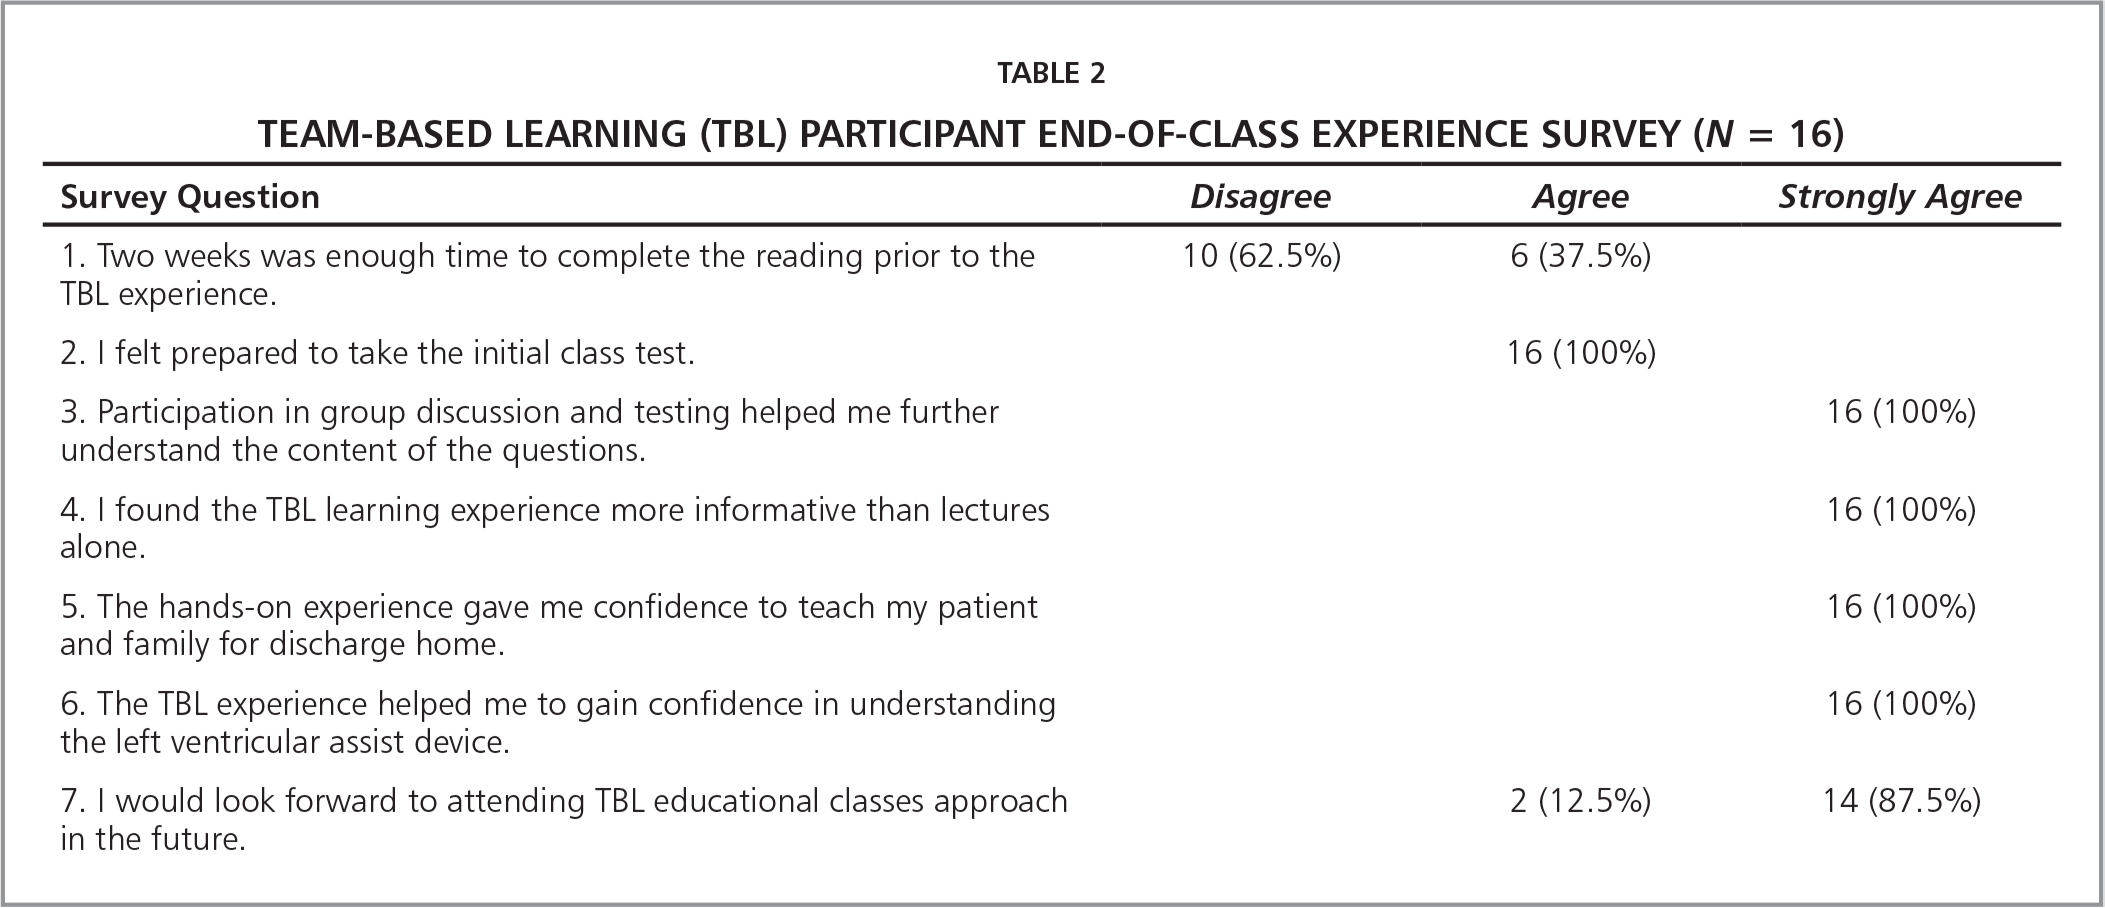 Team-Based Learning (TBL) Participant End-of-Class Experience Survey (N = 16)